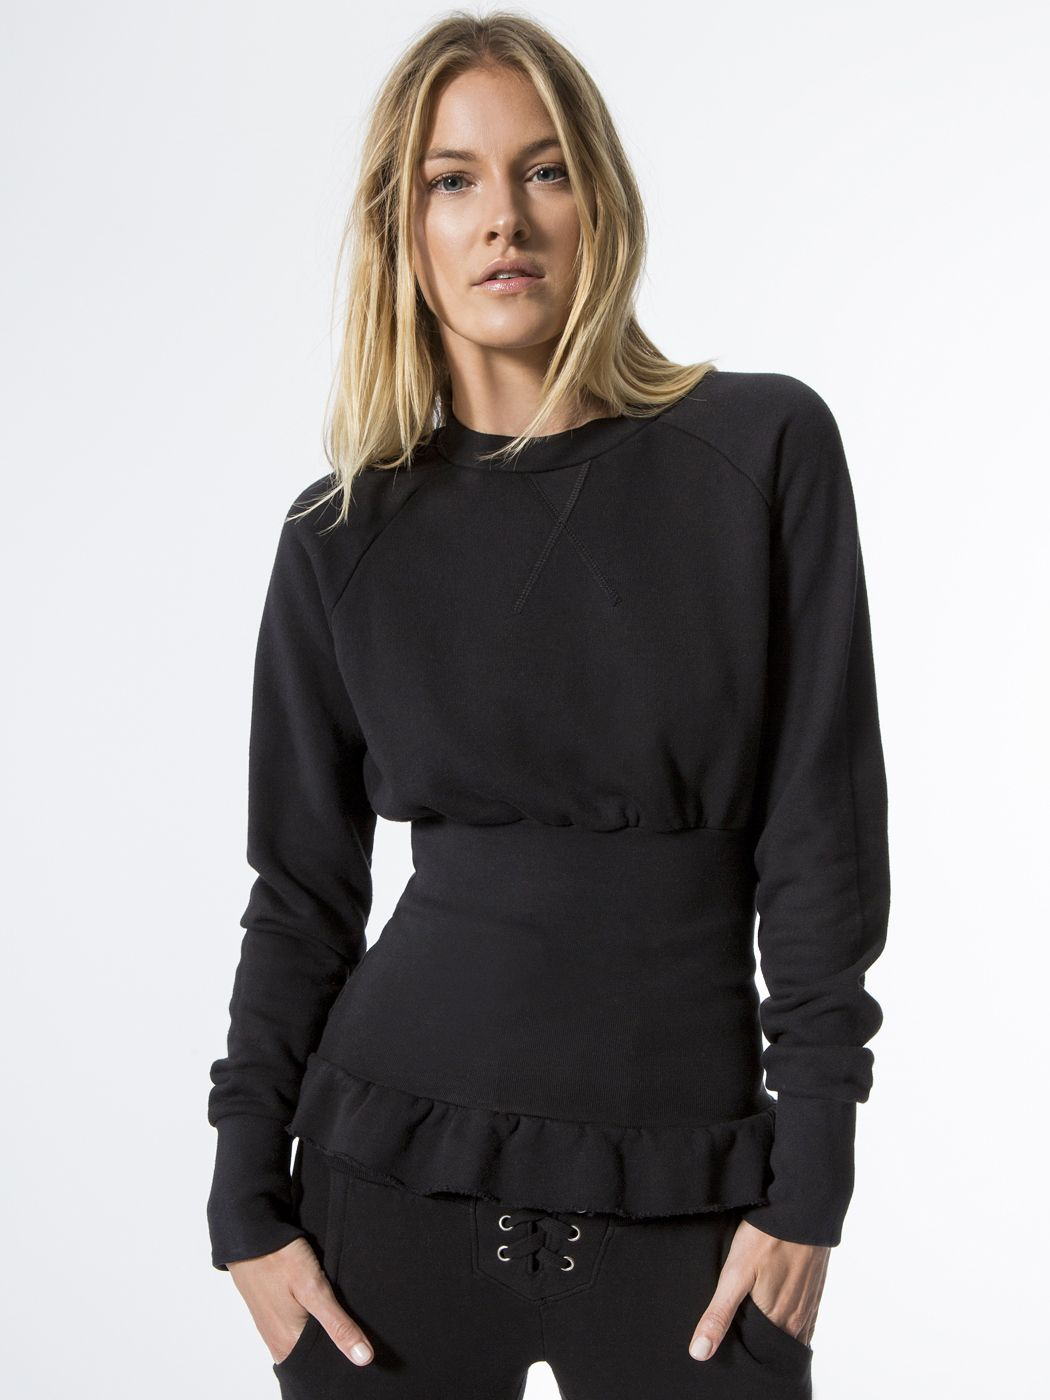 Indira sweatshirts in black by nsf from carbon fashion